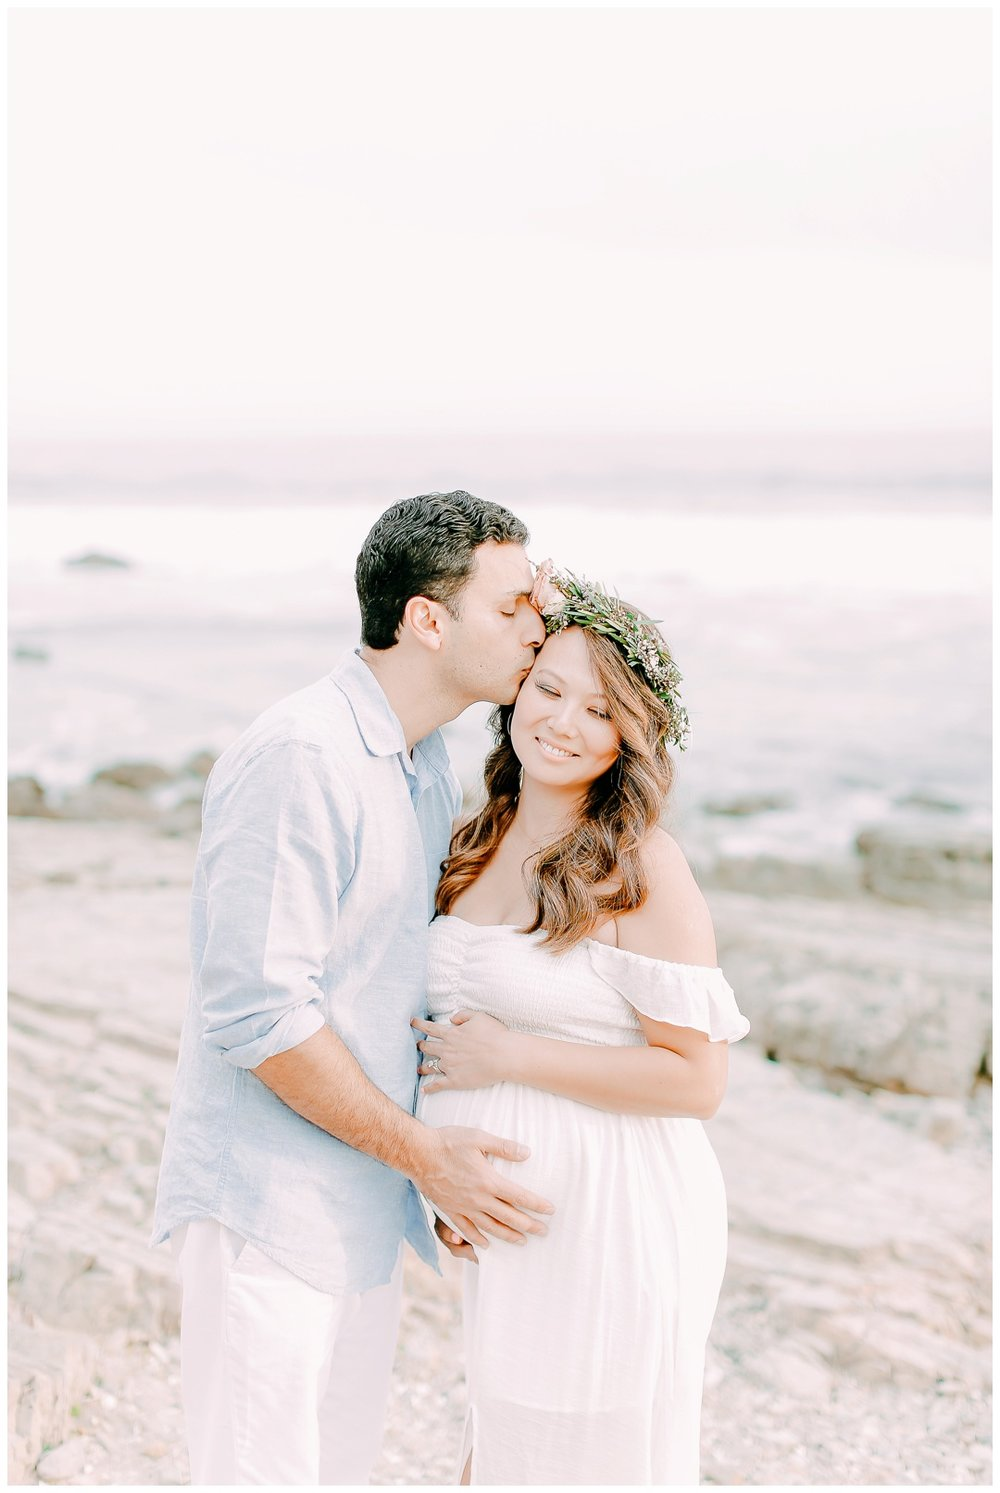 Newport_Beach_Maternity_Photographer_Orange_County_Maternity_Photography_Cori_Kleckner_Photography_Orange_County_Family_Photographer_Beach_Maternity_Session_1132.jpg